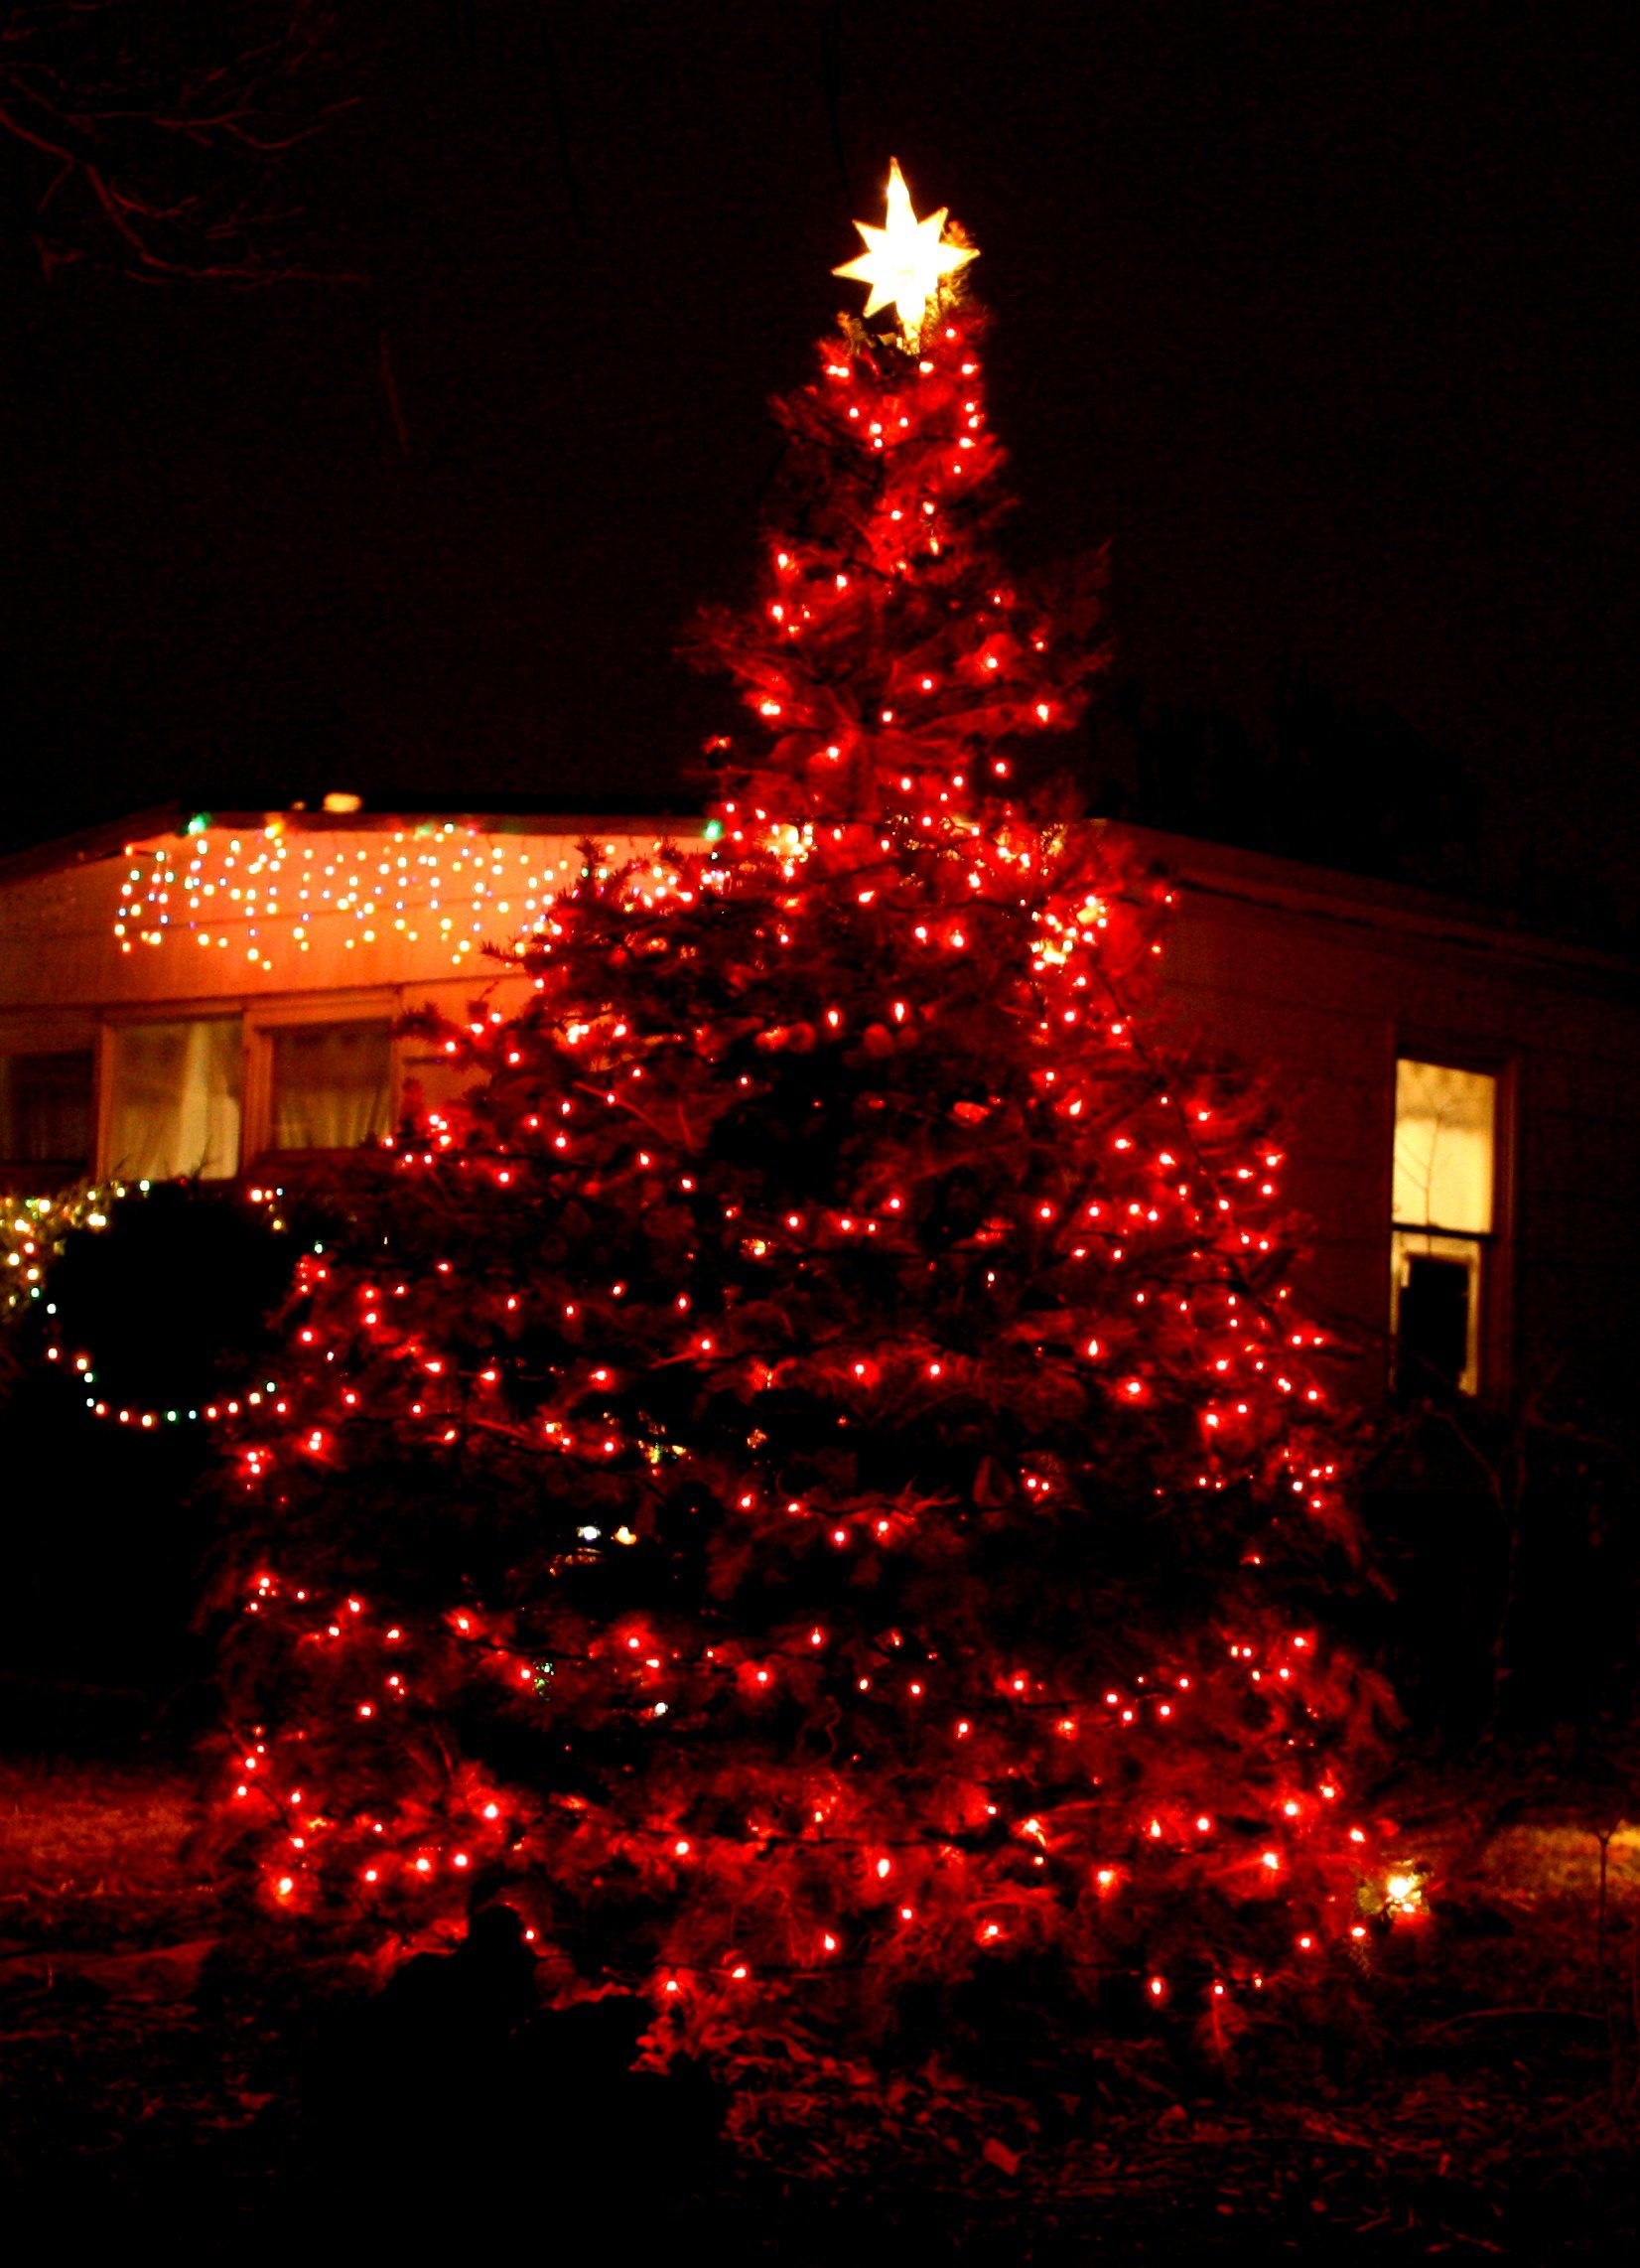 If you dont know what palette to follow then stick to warm white this free high resolution photo features an outdoor christmas tree decorated with red lights and a golden star this holiday picture is free for any use mozeypictures Choice Image